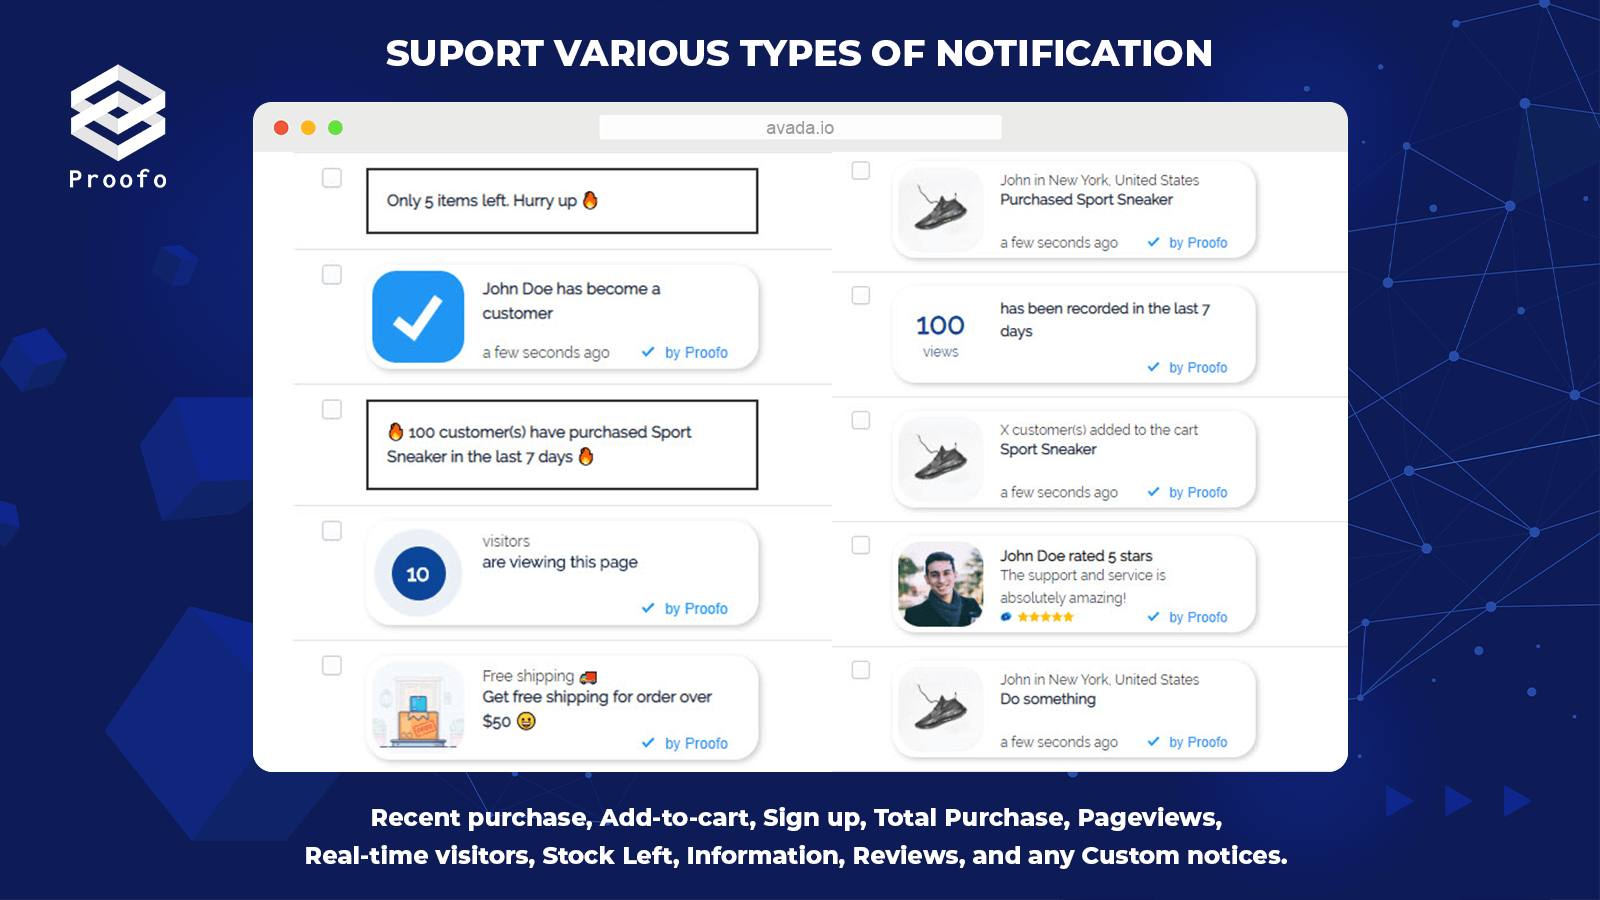 Social Proof application pop-up, notification features